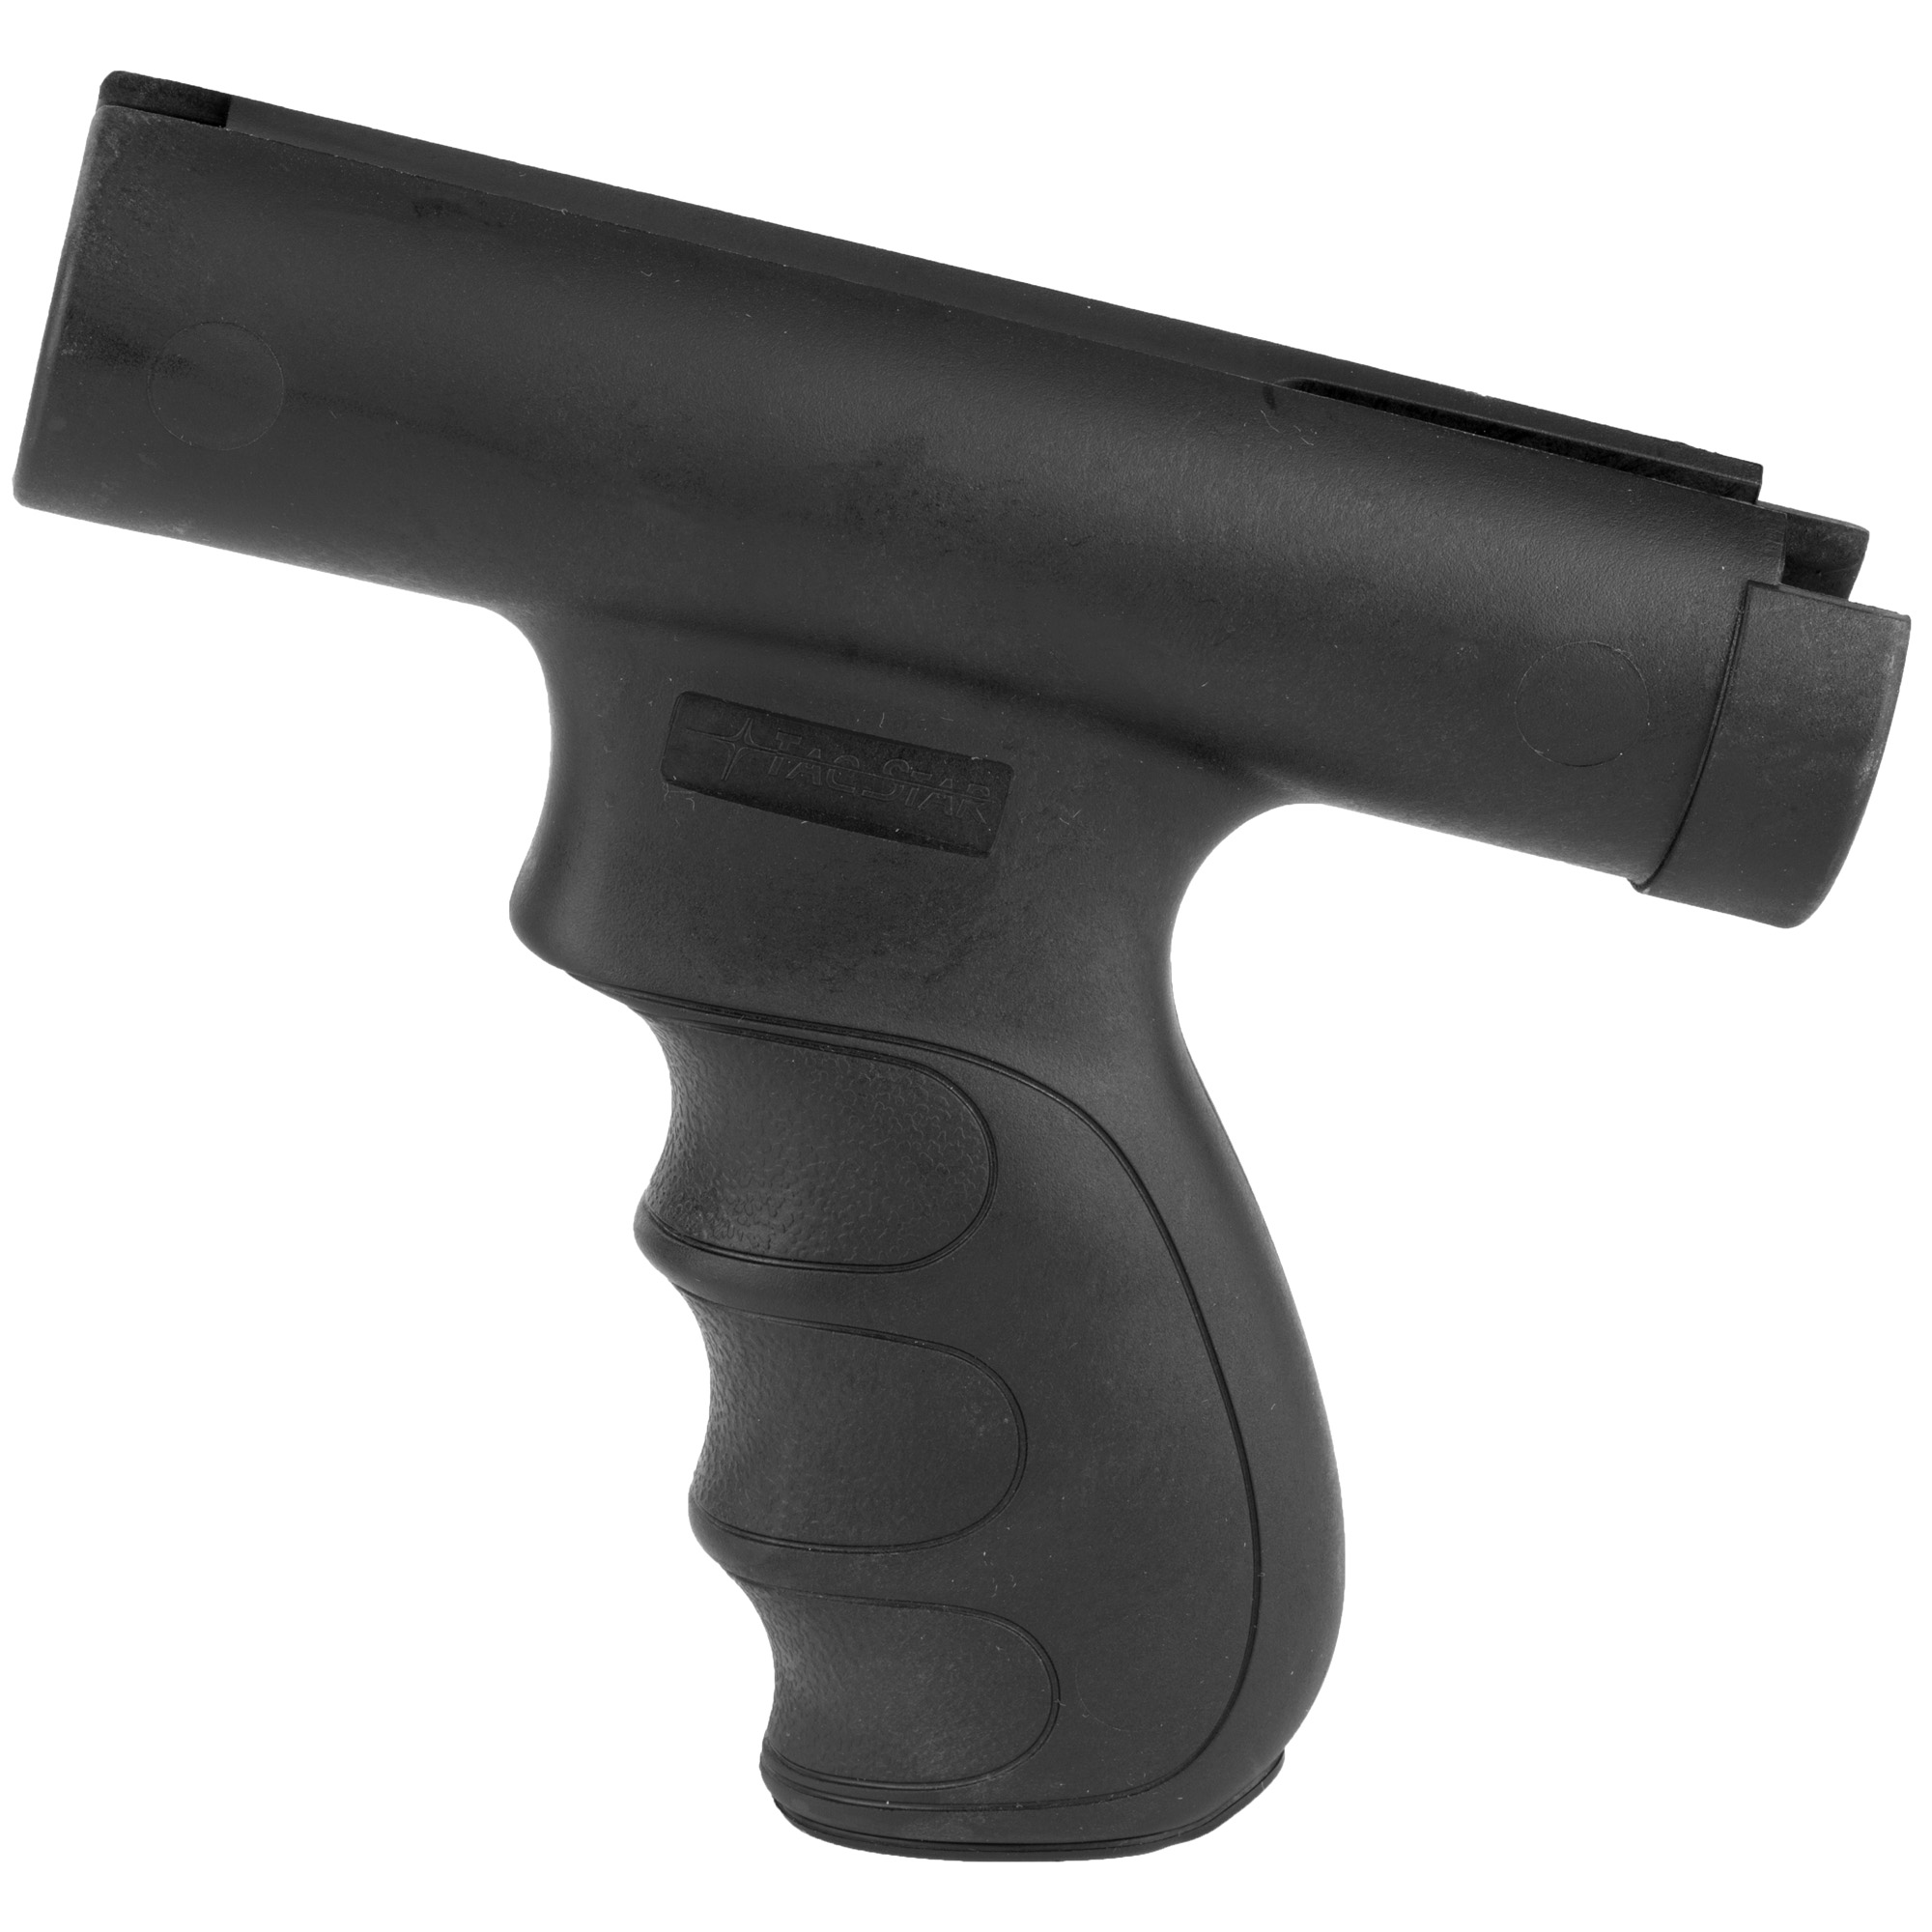 """The TacStar Shotgun Grips were designed with the proper width"""" rearward angle and back swell to distribute recoil energy evenly into both hands resulting in greater speed"""" accuracy and control when shooting. Injection-molded from a high-impact ABS polymer"""" Tactical Shotgun Grip Sets include all the necessary hardware for quick and easy installation and require no alterations to the shotgun. 12 Gauge only. Fits Remington 870. Front grip only."""